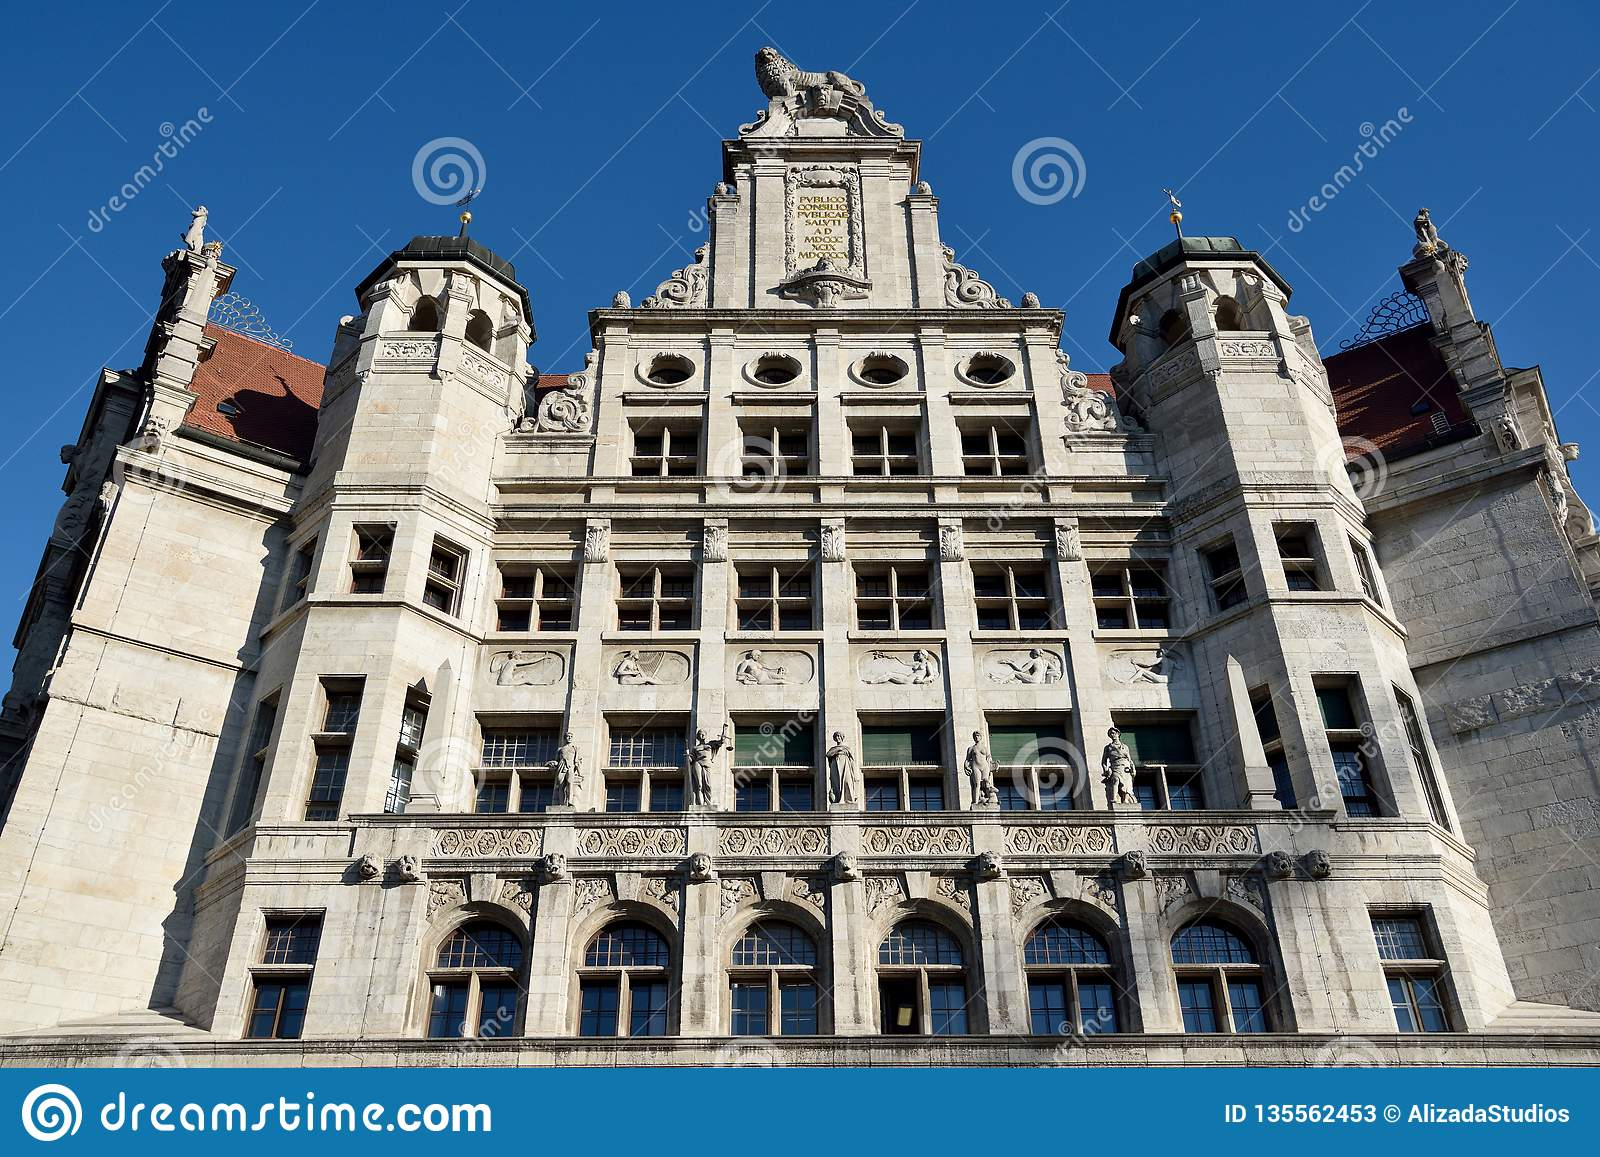 Facade Of New Town Hall Neues Rathaus Building In Leipzig Editorial Stock Photo Image Of Building Book 135562453